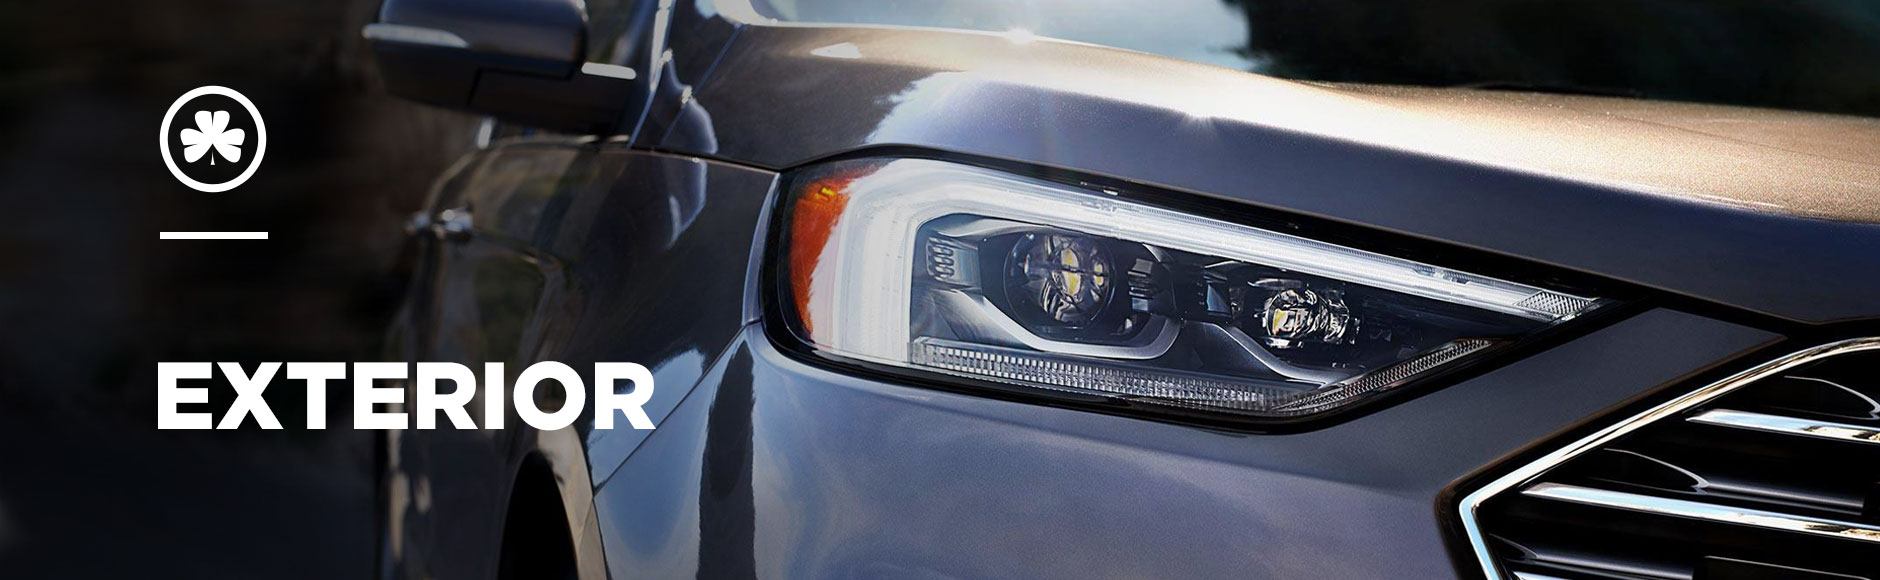 Ford Edge Exterior banner - front headlight